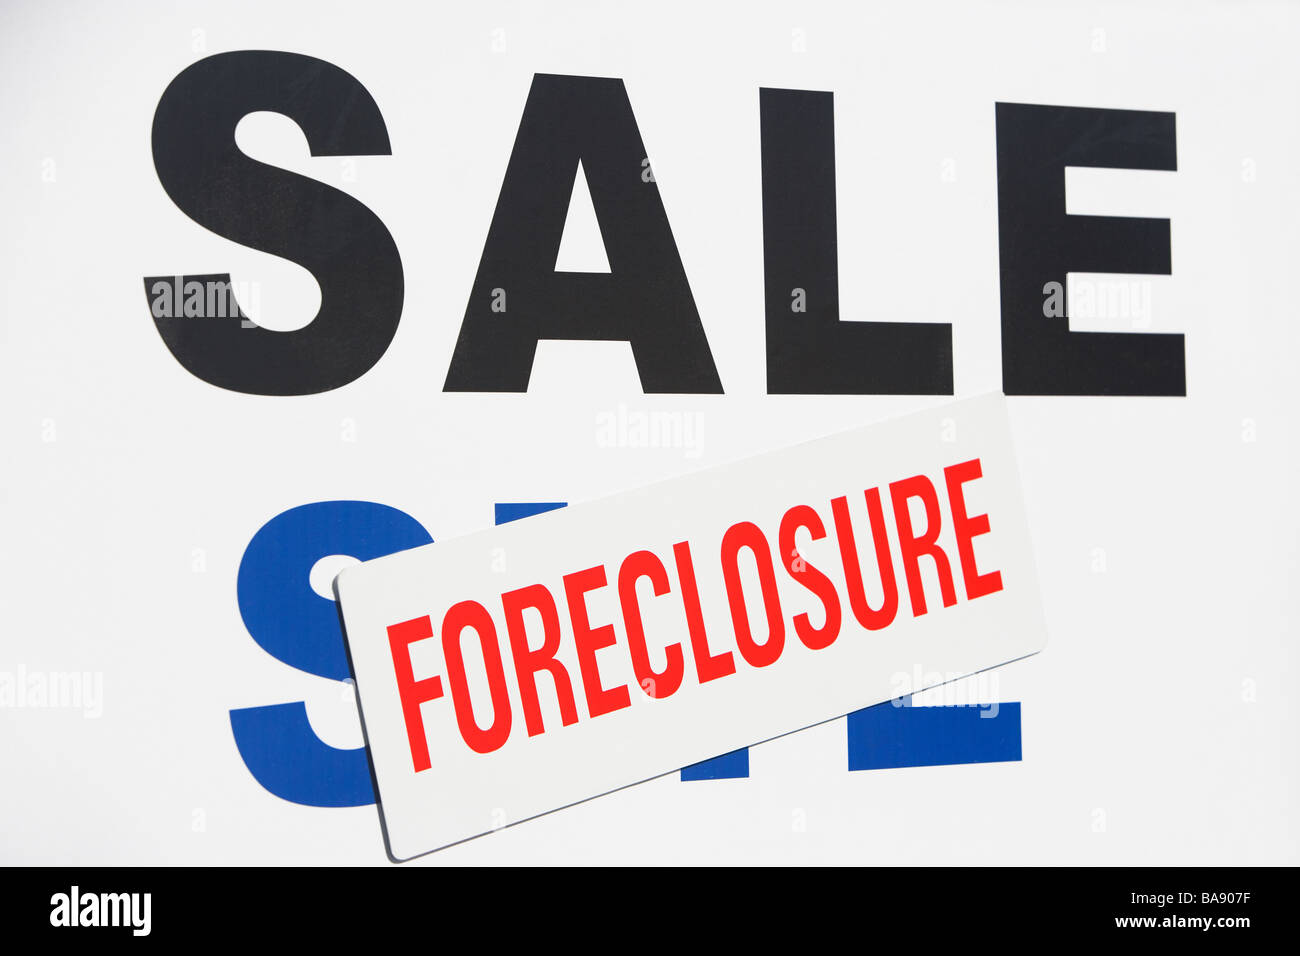 Sale foreclosure sign - Stock Image